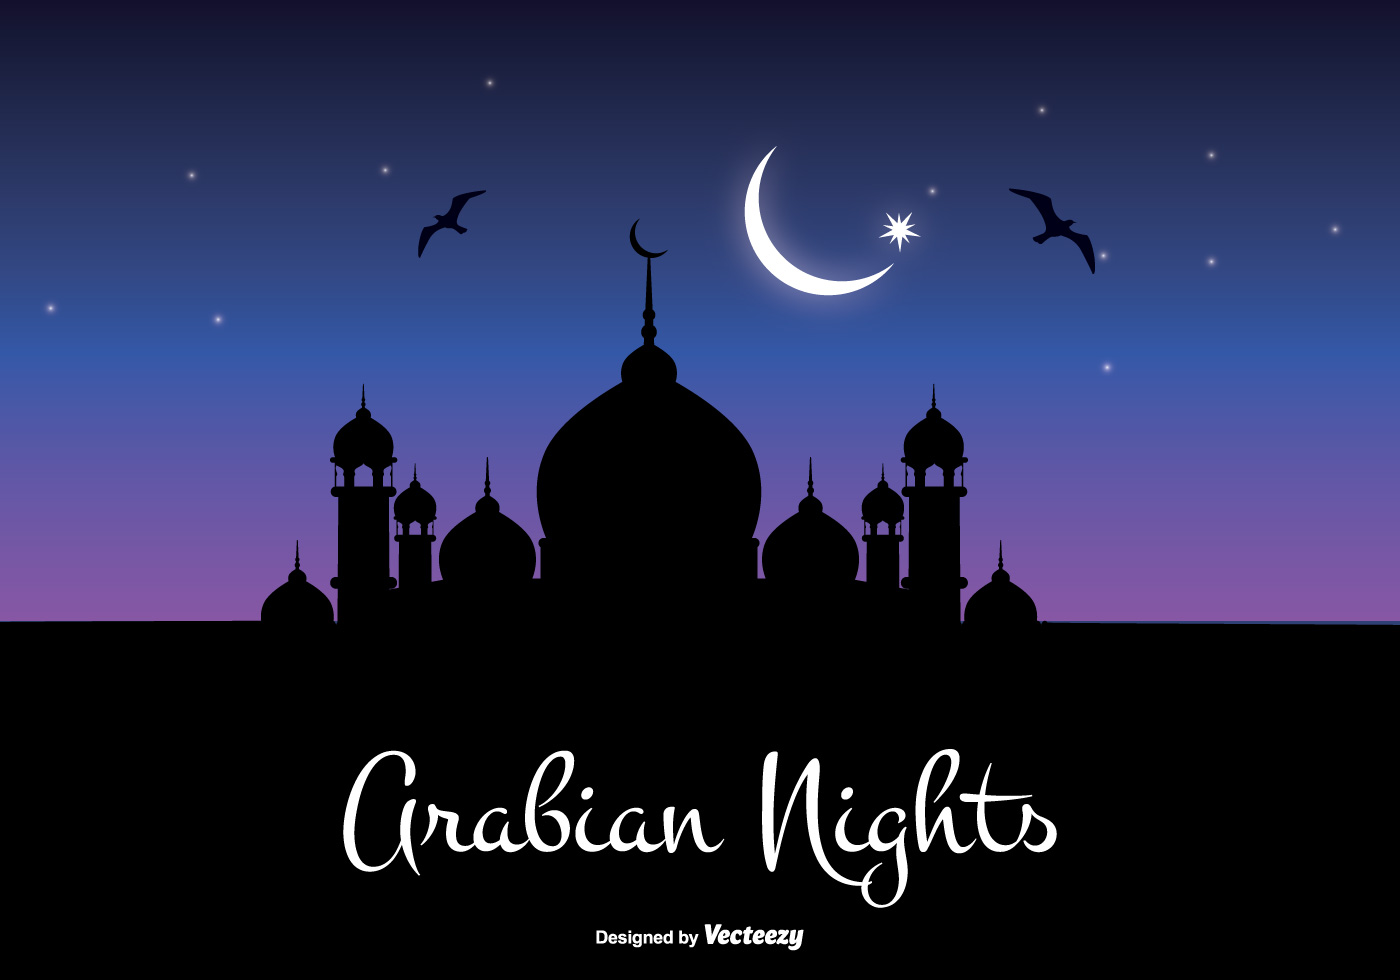 arabian nights illustration download free vector art  stock graphics   images skyline clipart png sky zone clip art